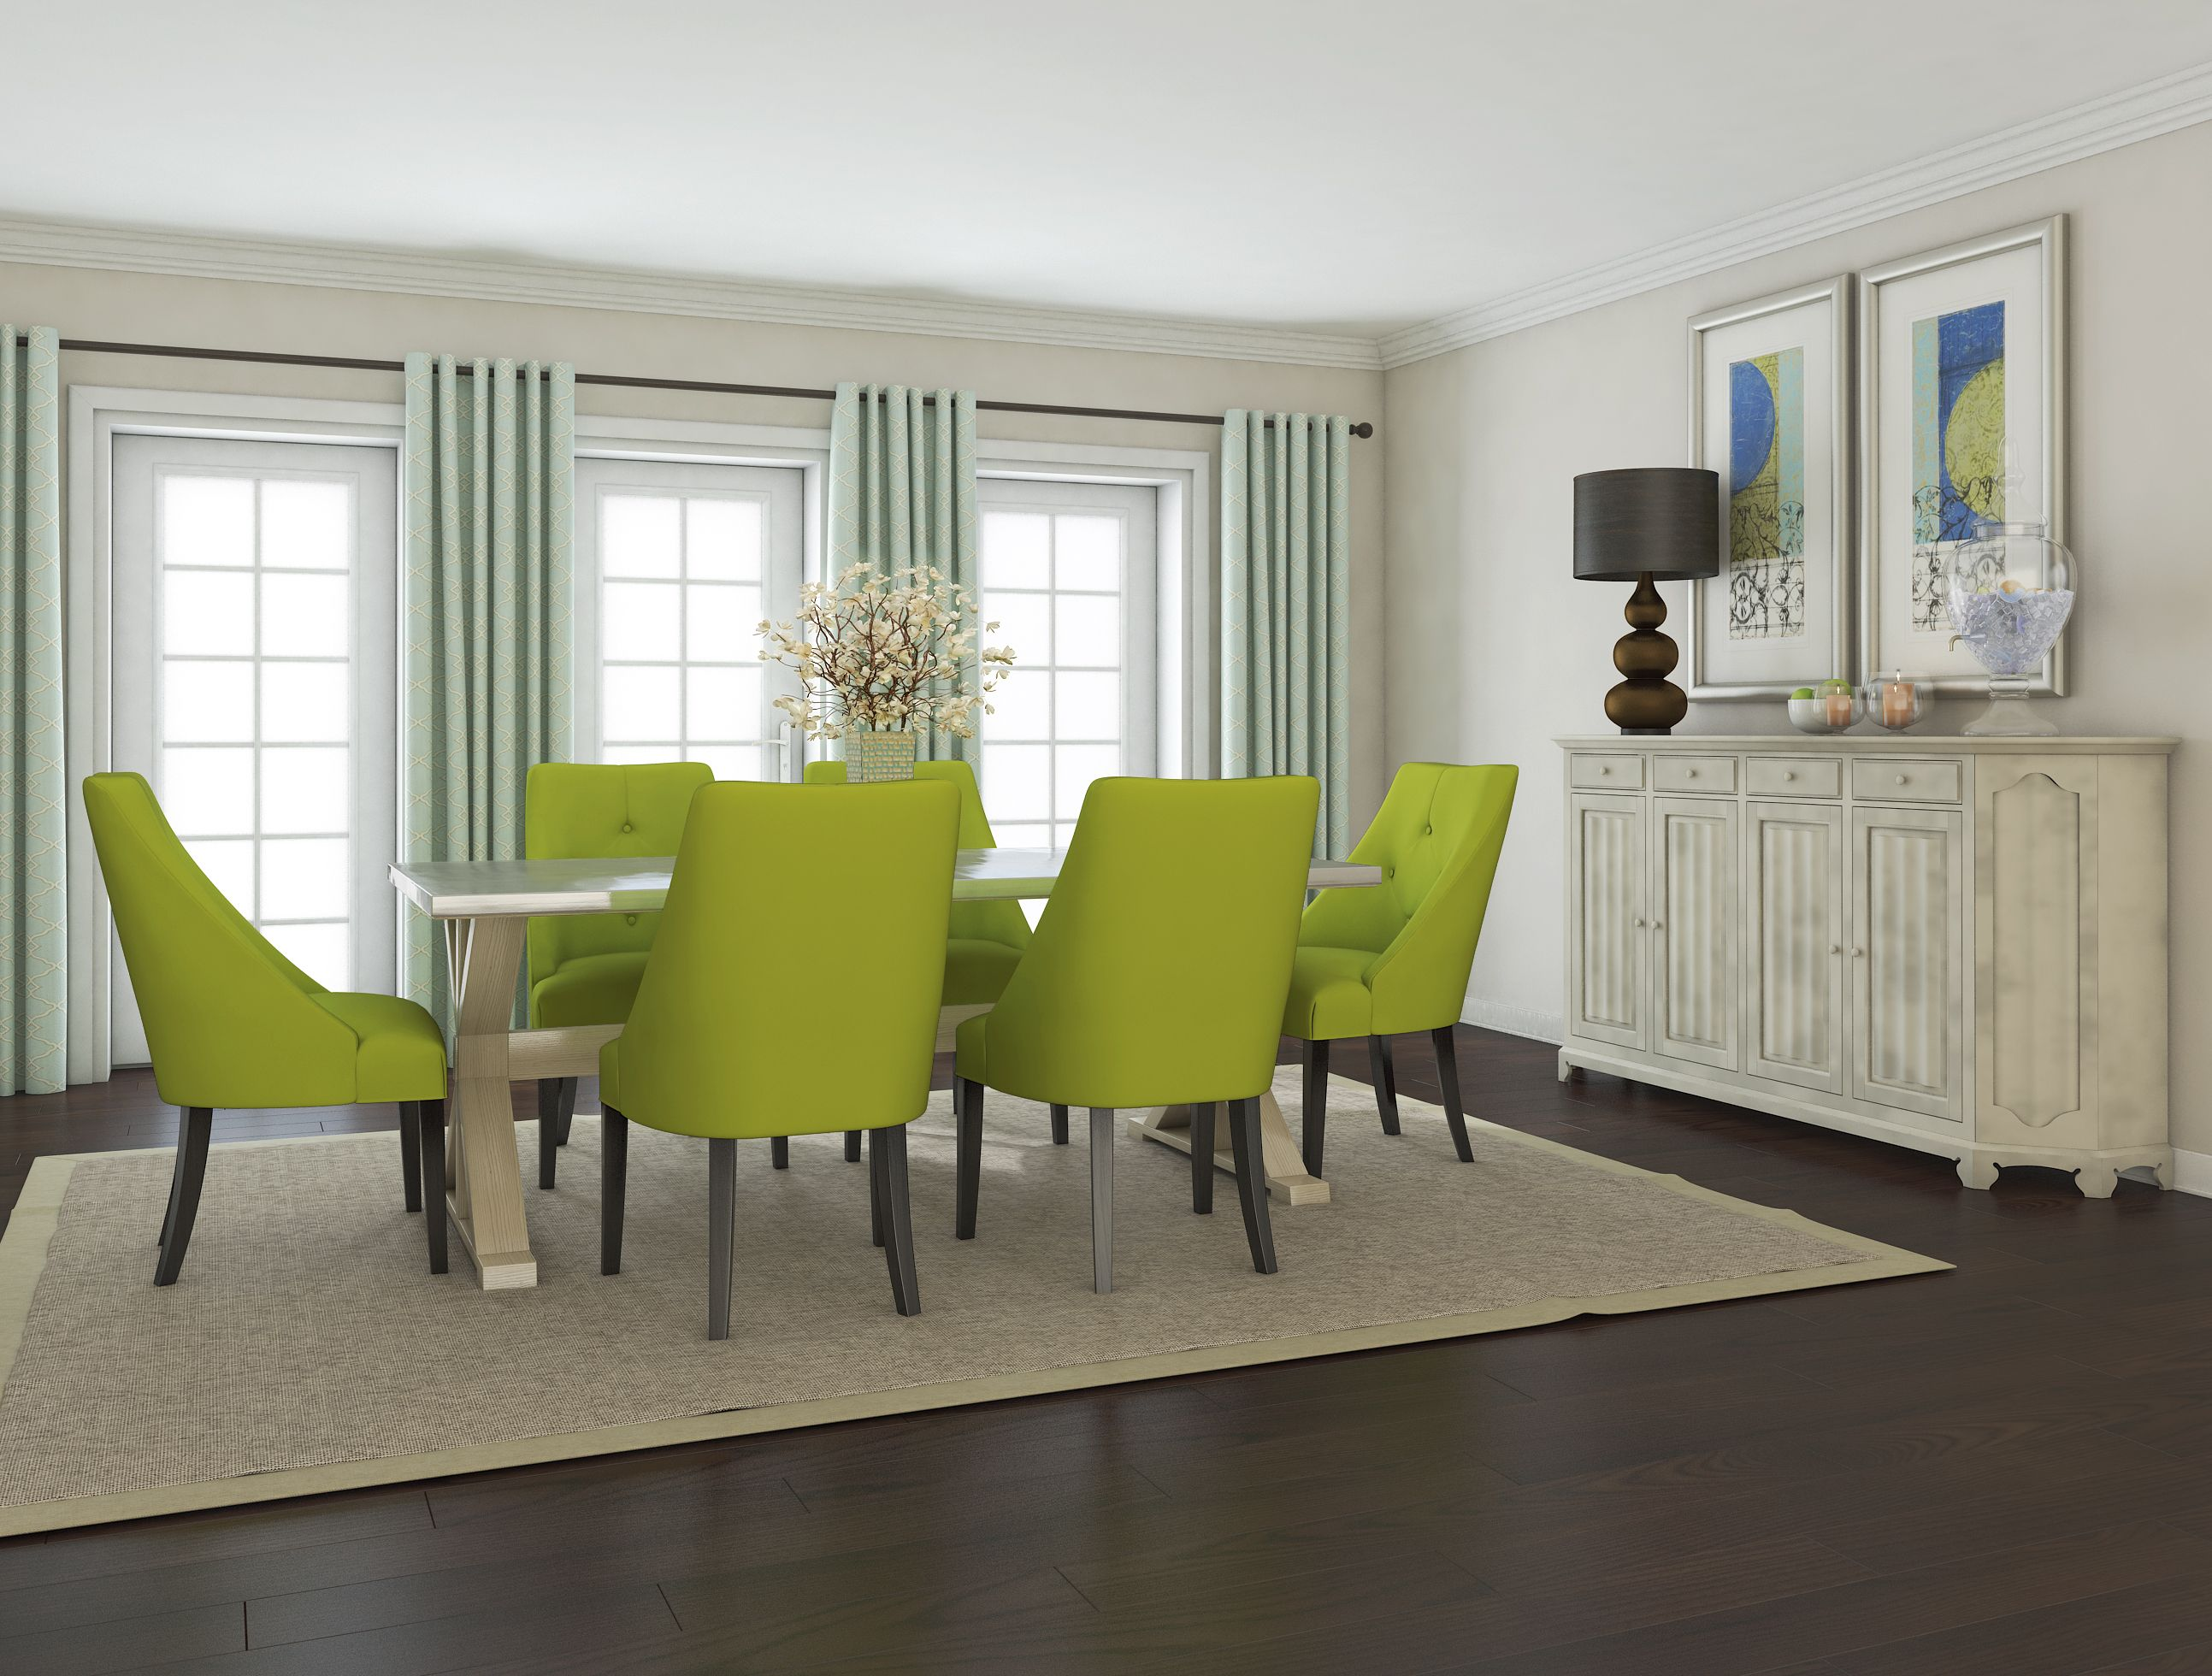 Elegant Green Vinyl Scoop Patterns Upholstered Dining Chairs On Grey Room Rugs Added Dark Wood Floors As Well White Dresser In Large Modern